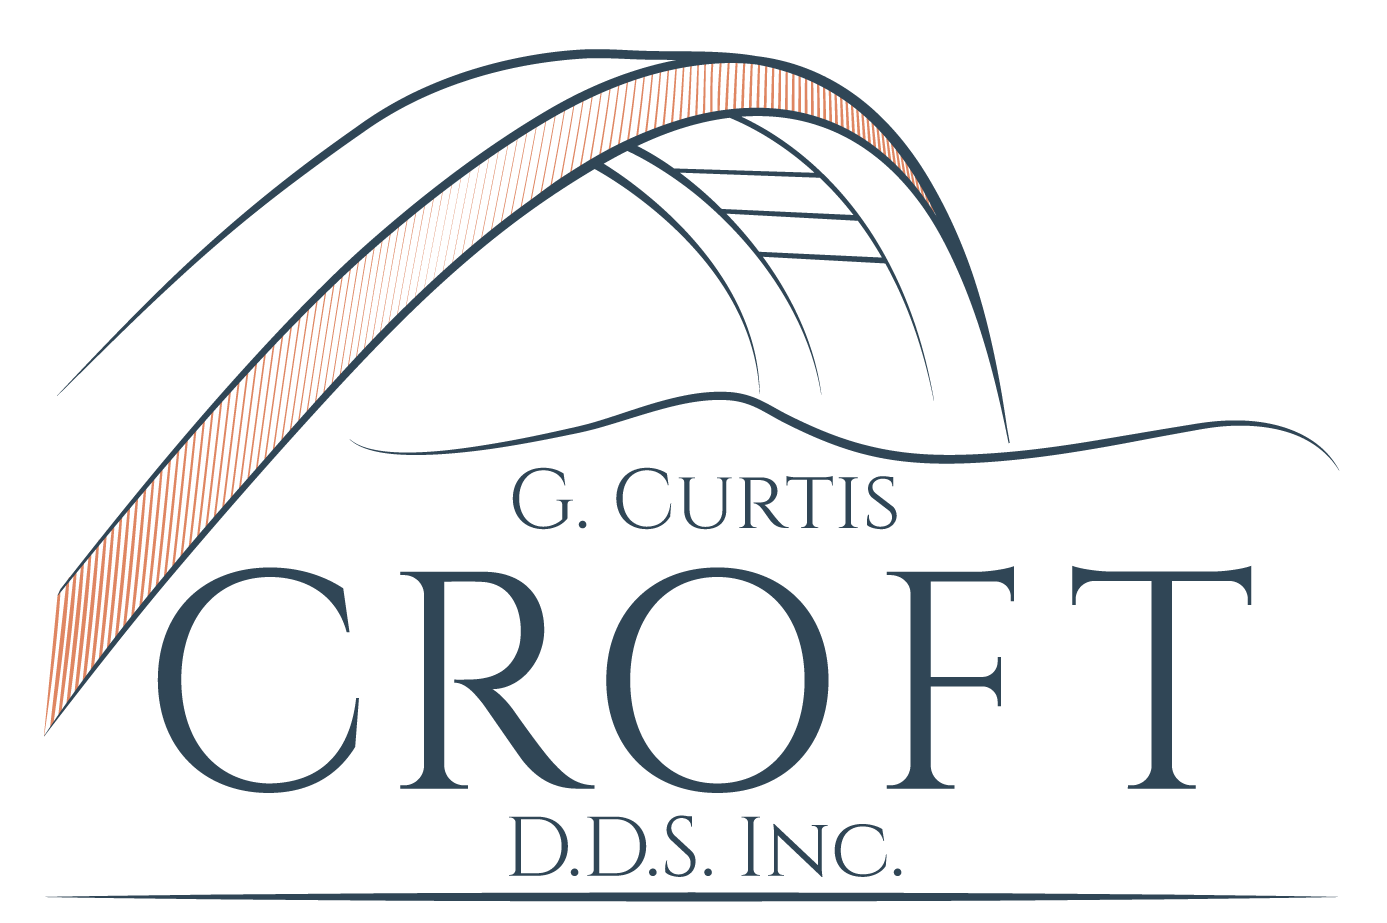 Dental Care - G. Curtis Croft D.D.S. Inc.